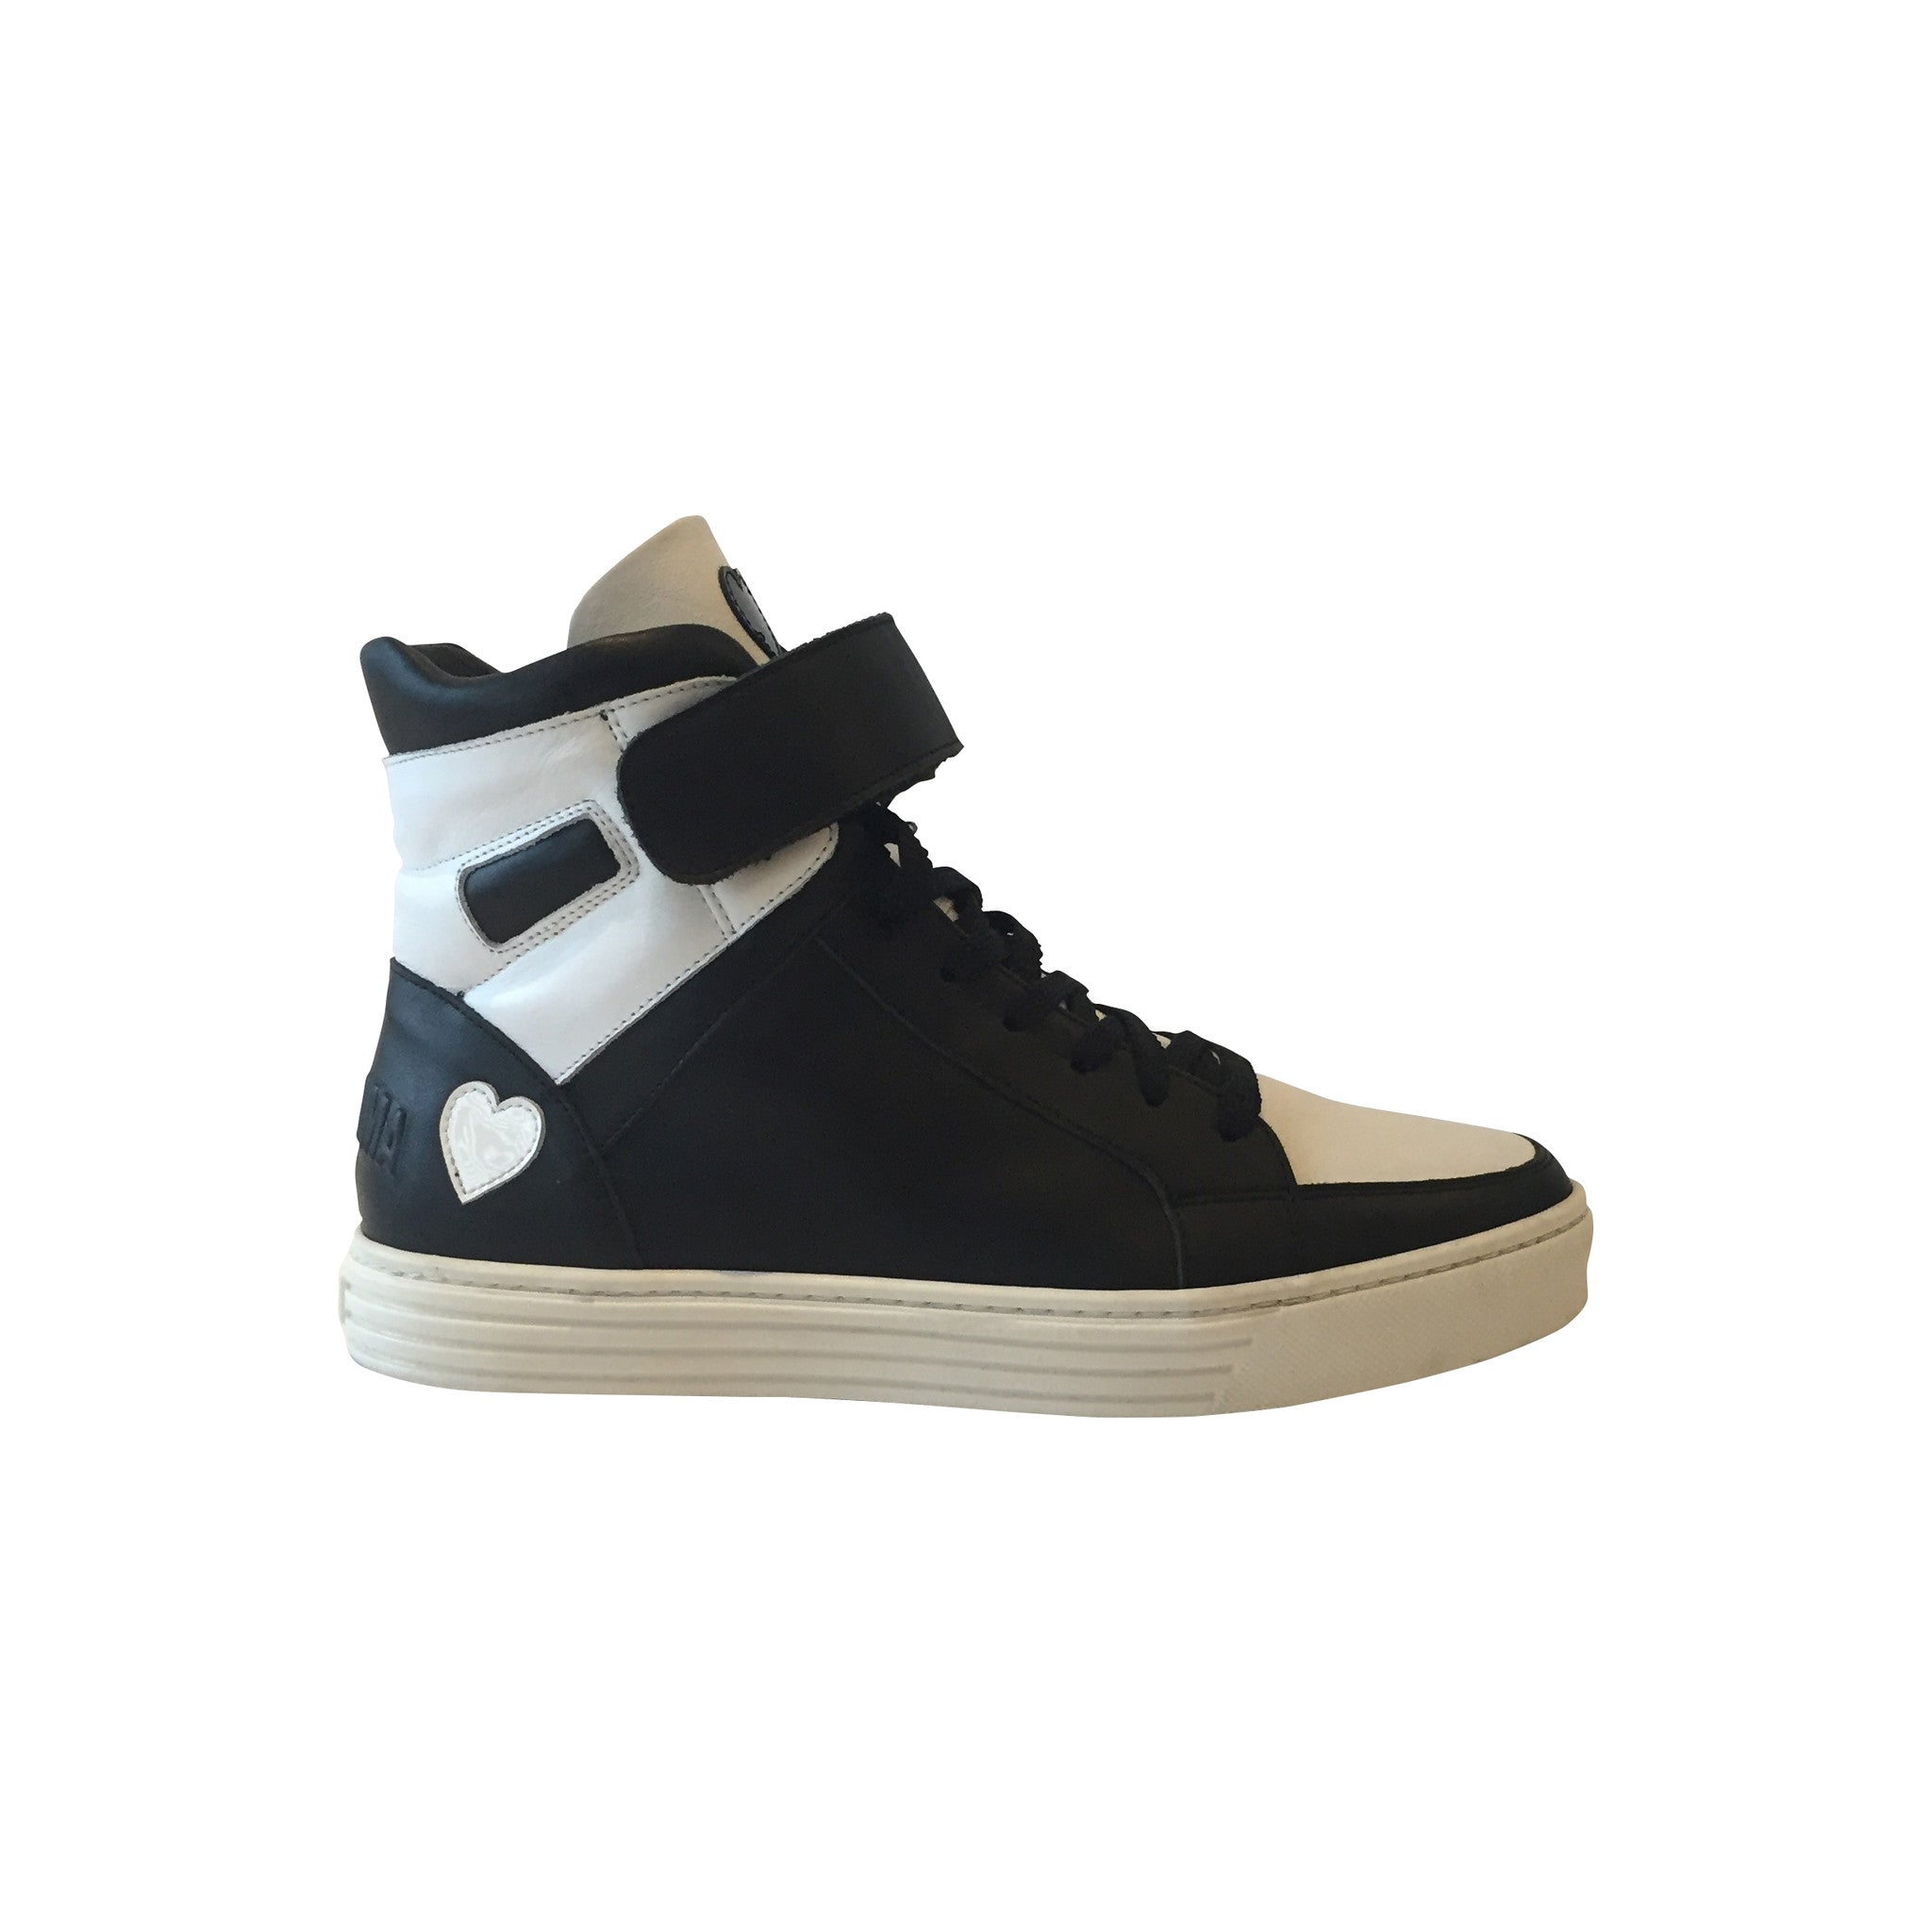 Julieta High Top